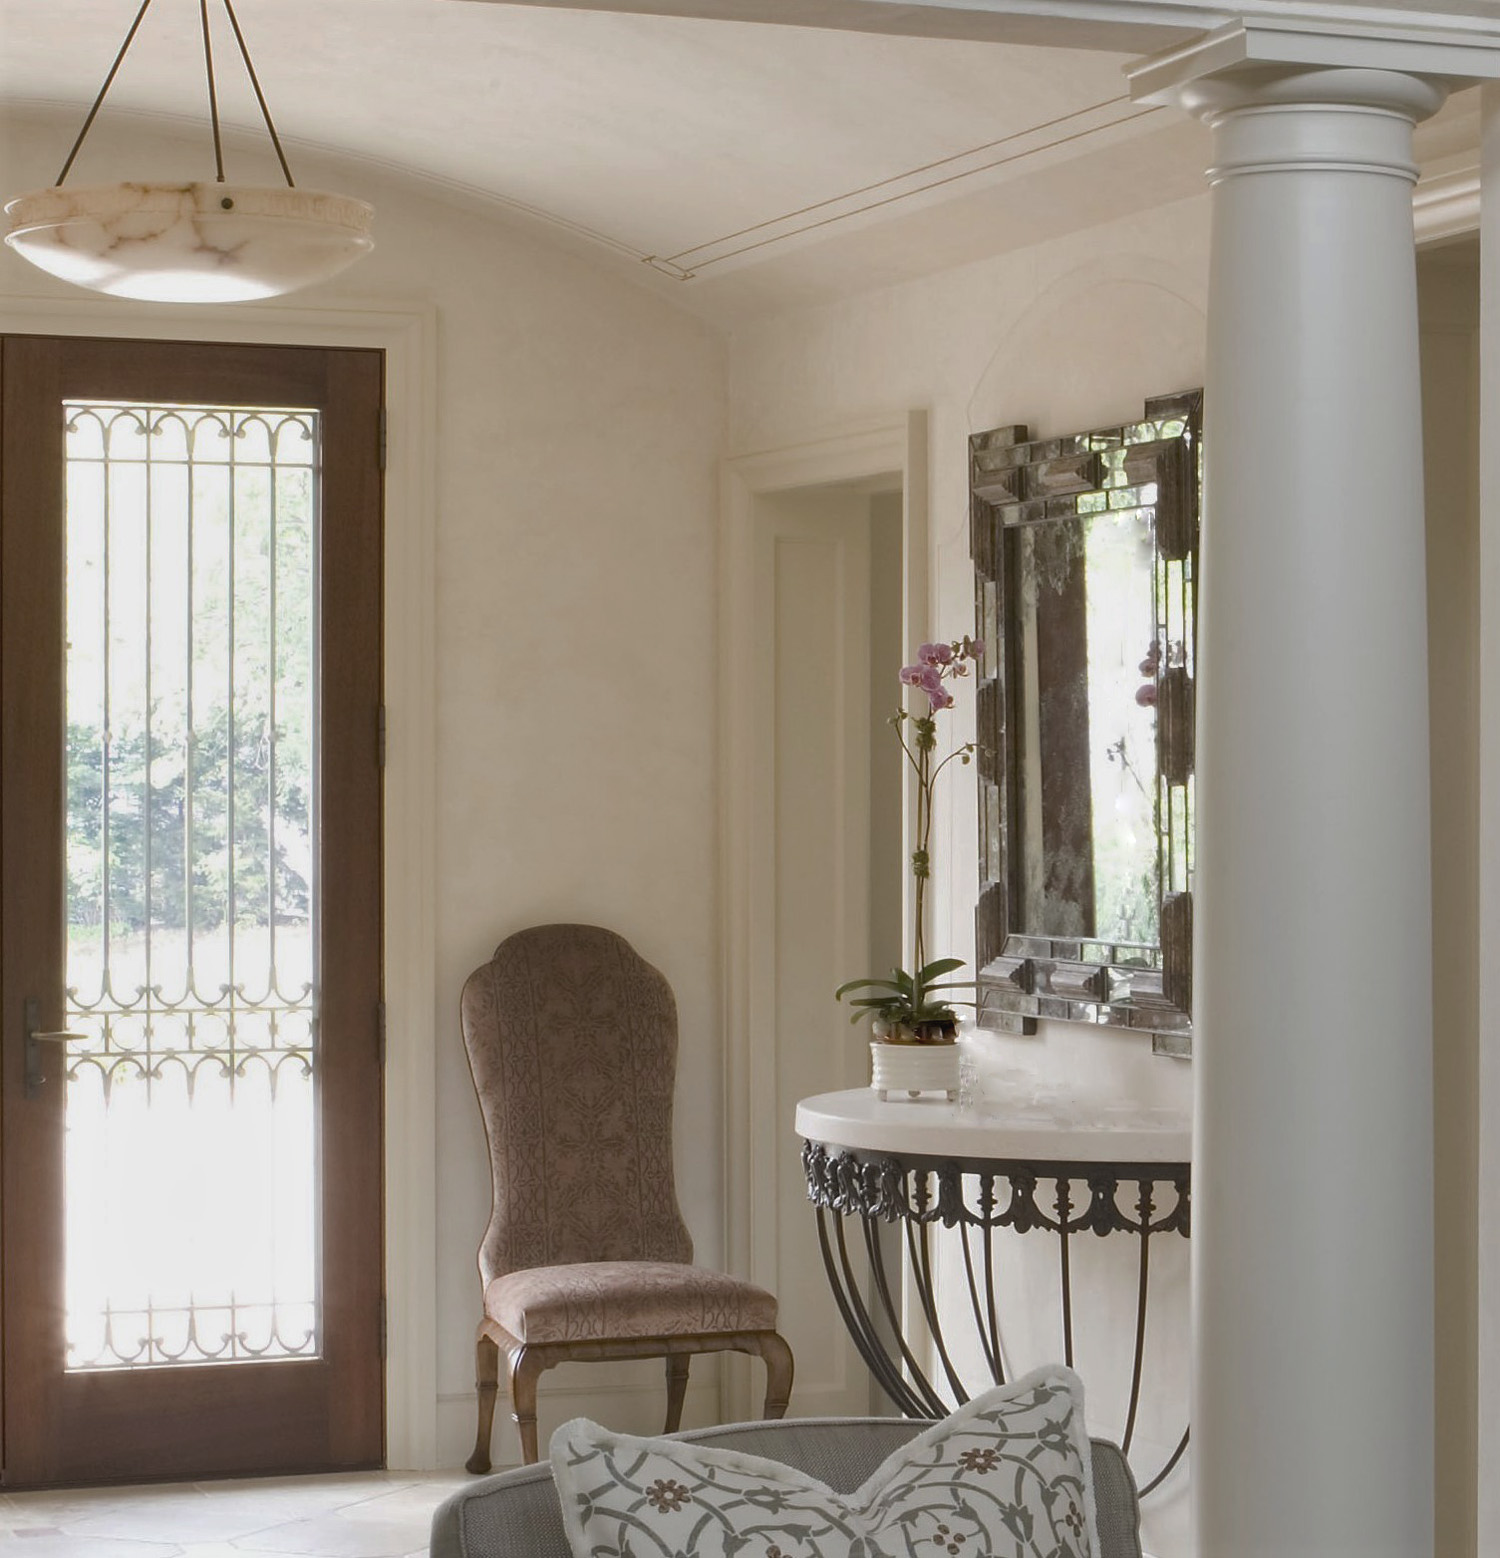 Scudiery Entry with Mirror.jpg